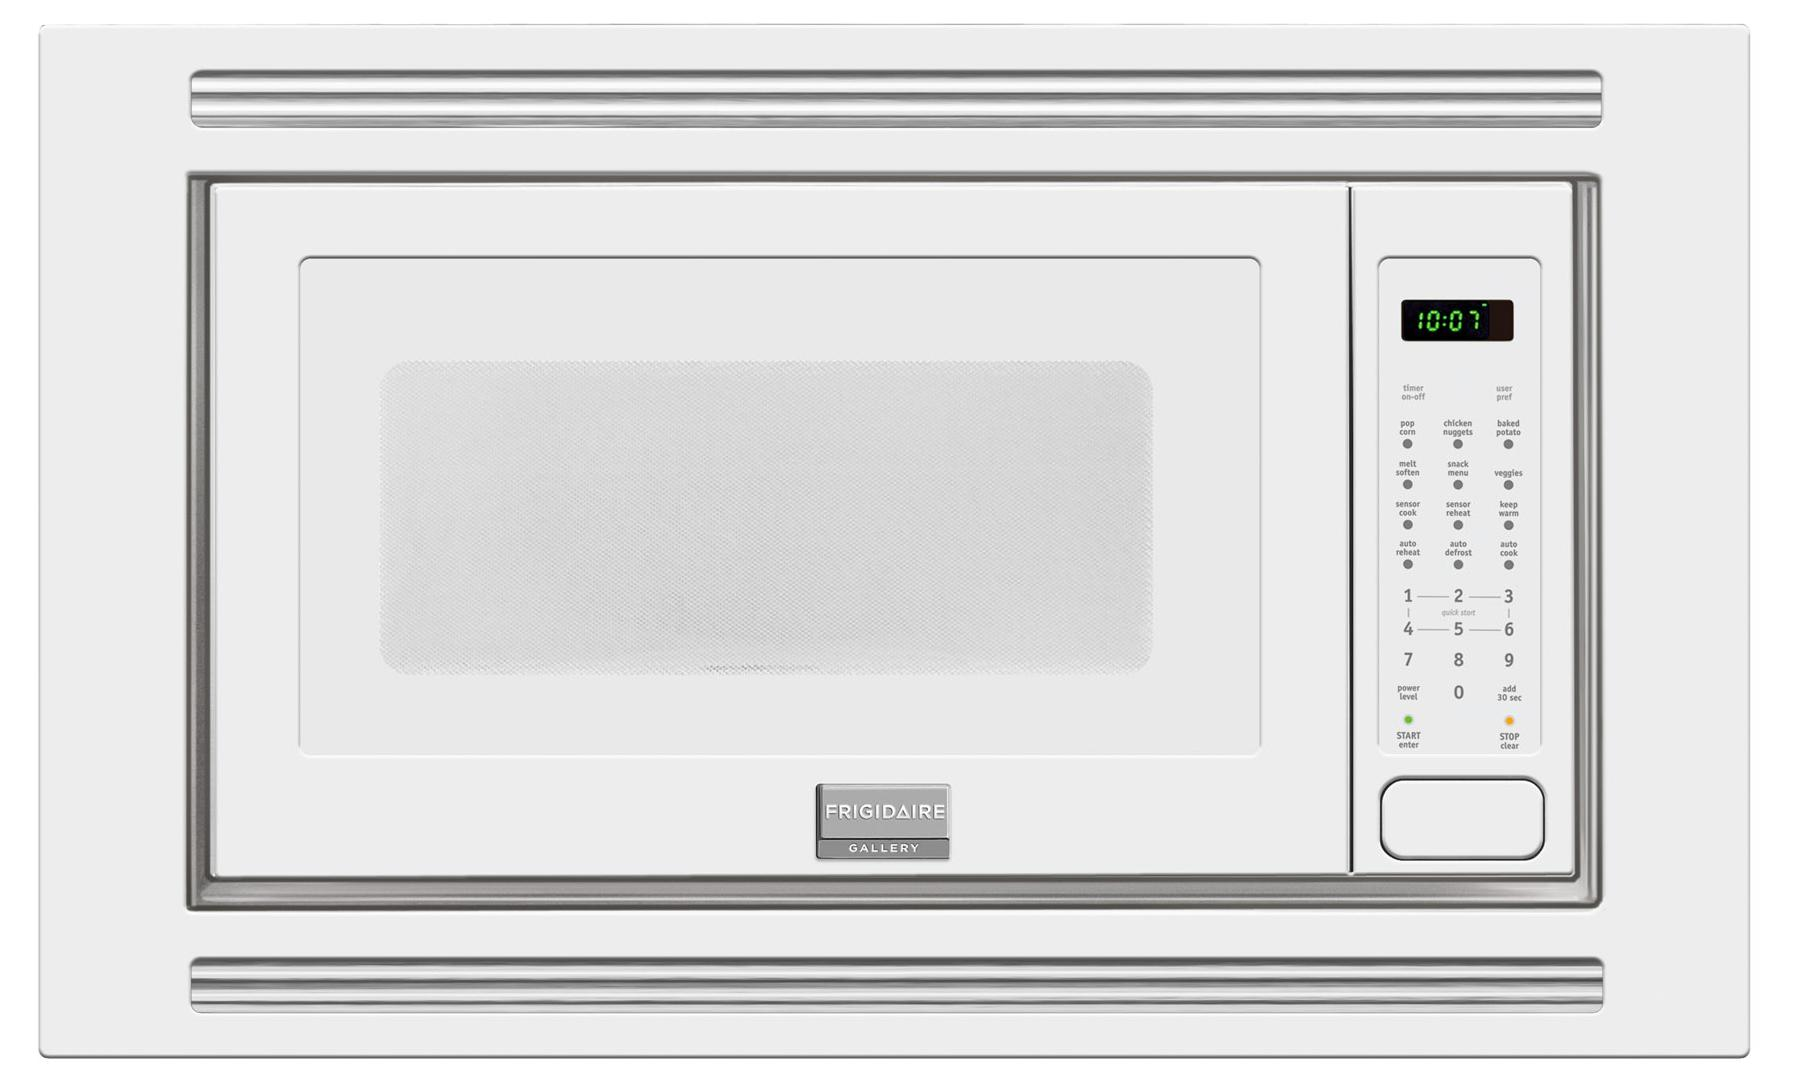 Frigidaire Microwaves 2.0 Cu. Ft. Built-In Microwave - Item Number: FGMO205KW